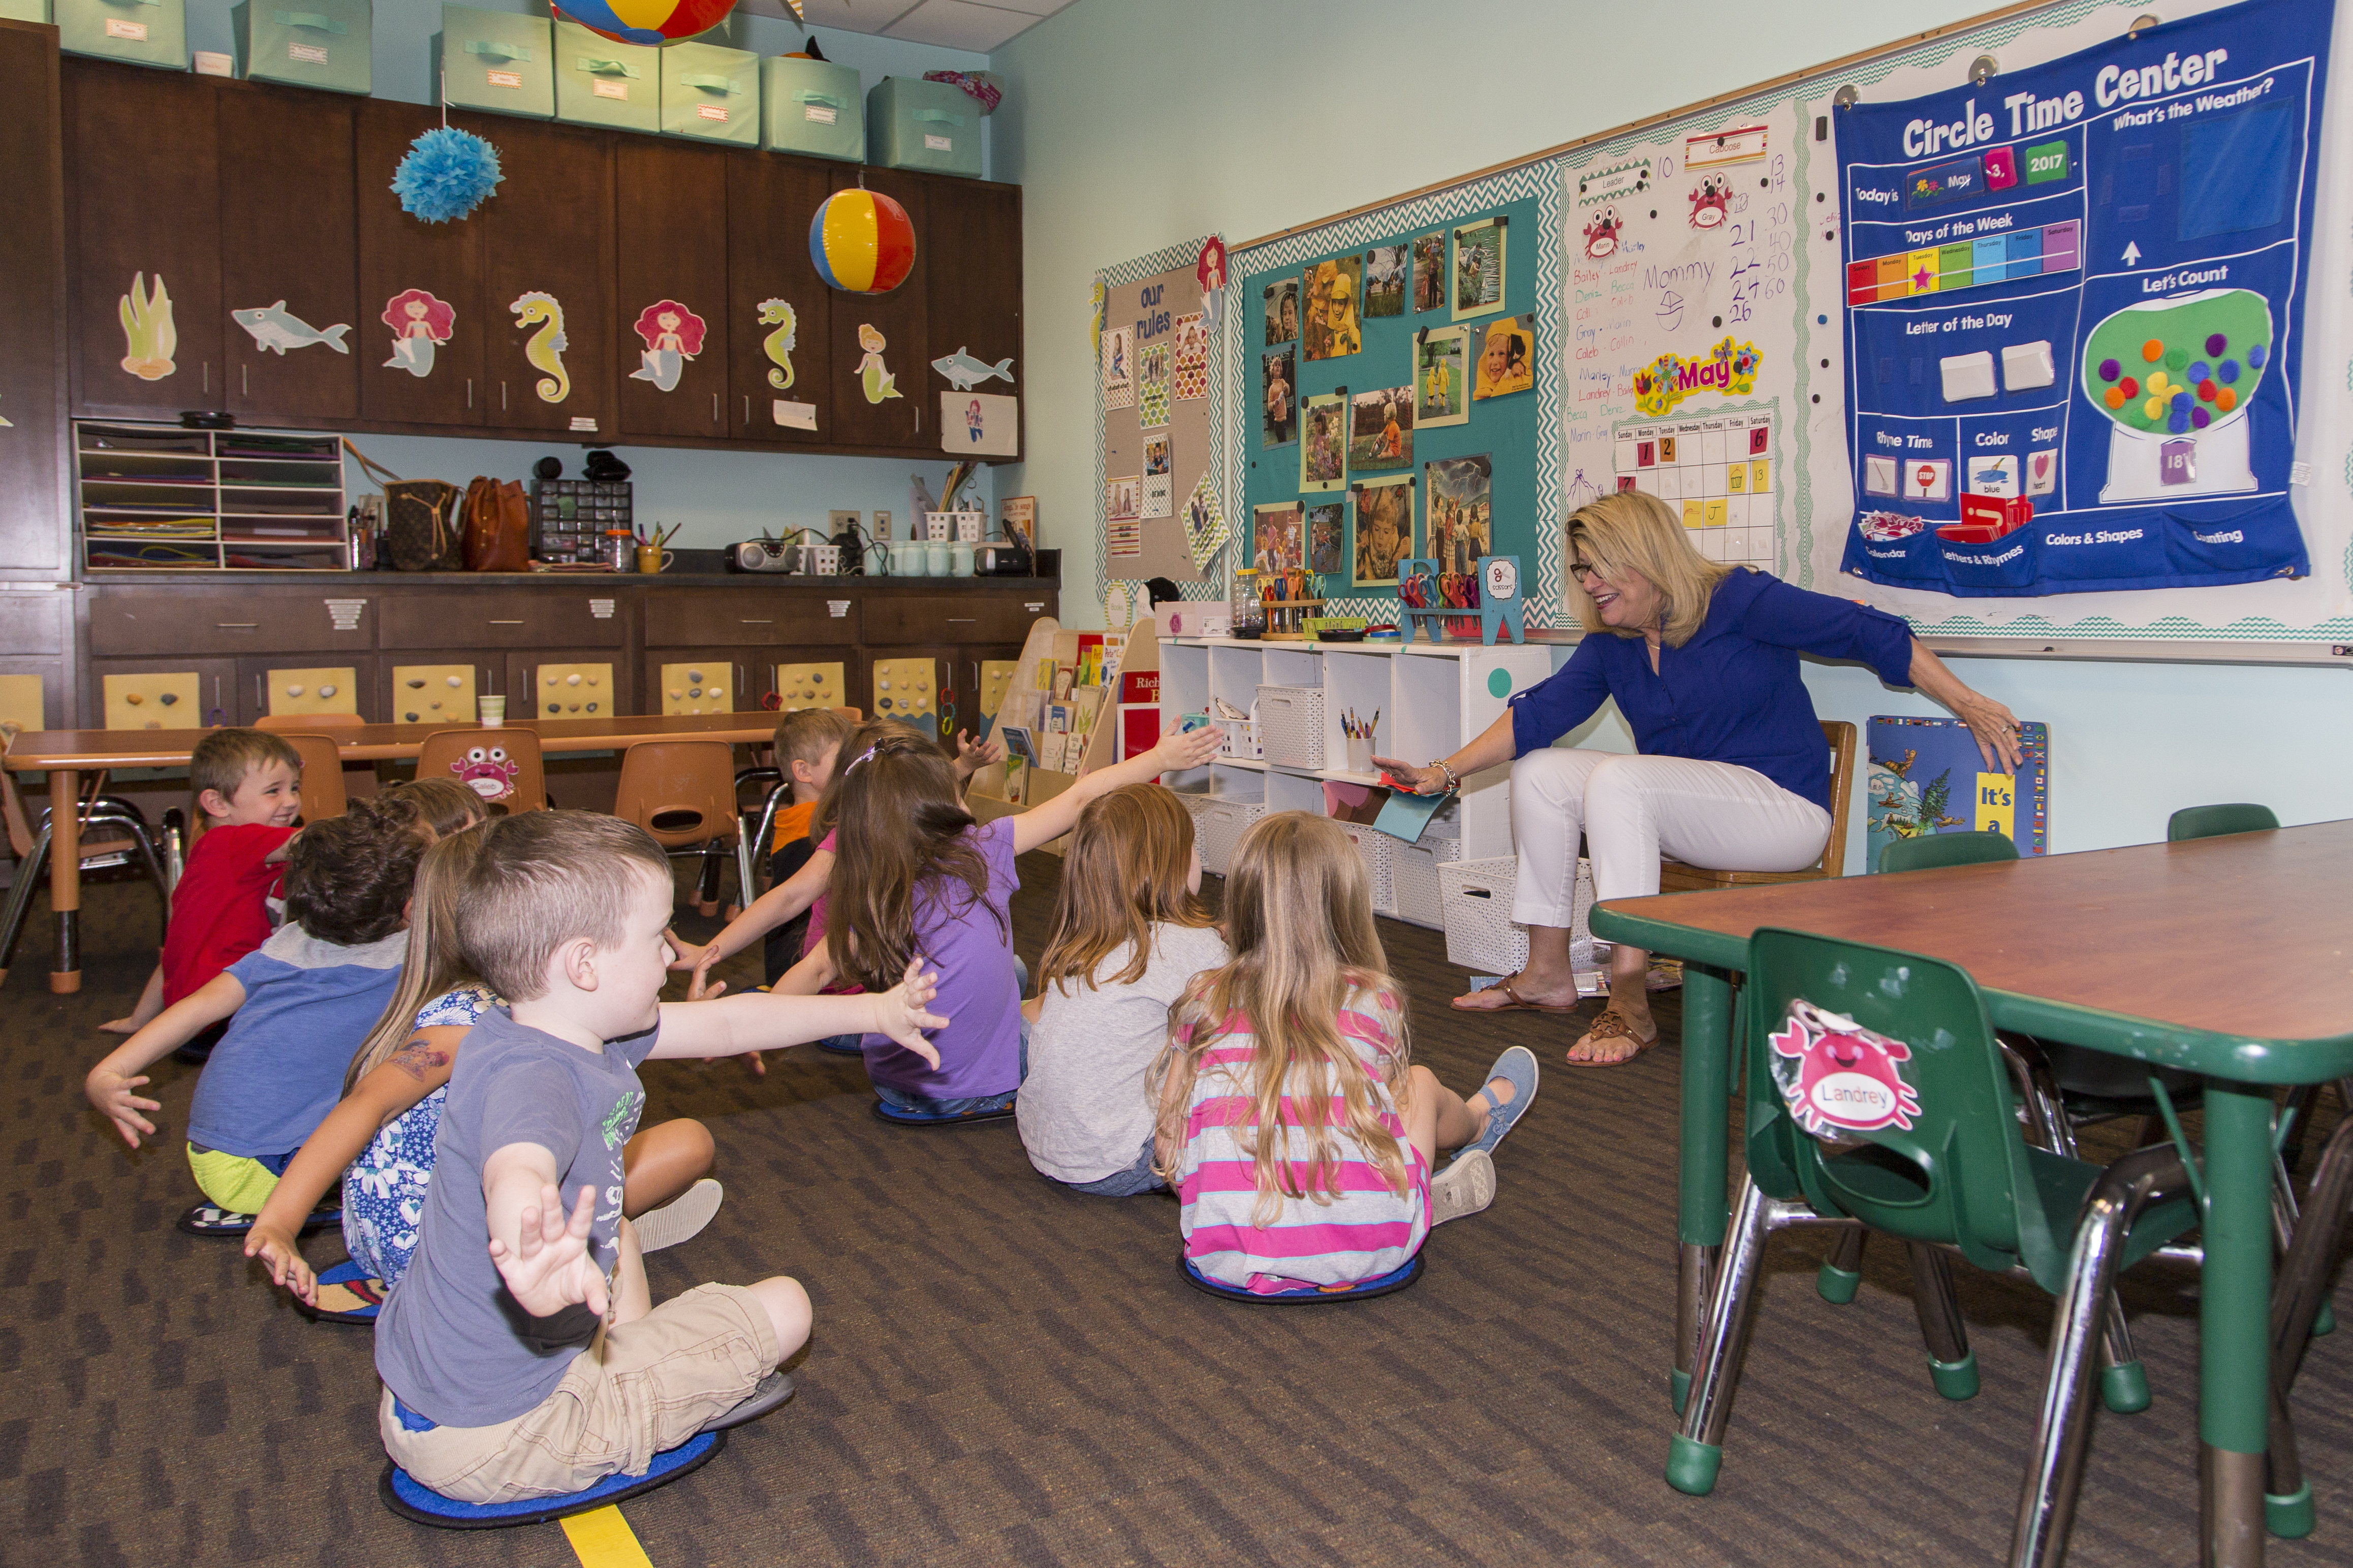 Preschool Program - Christ Episcopal Church, Valdosta GA